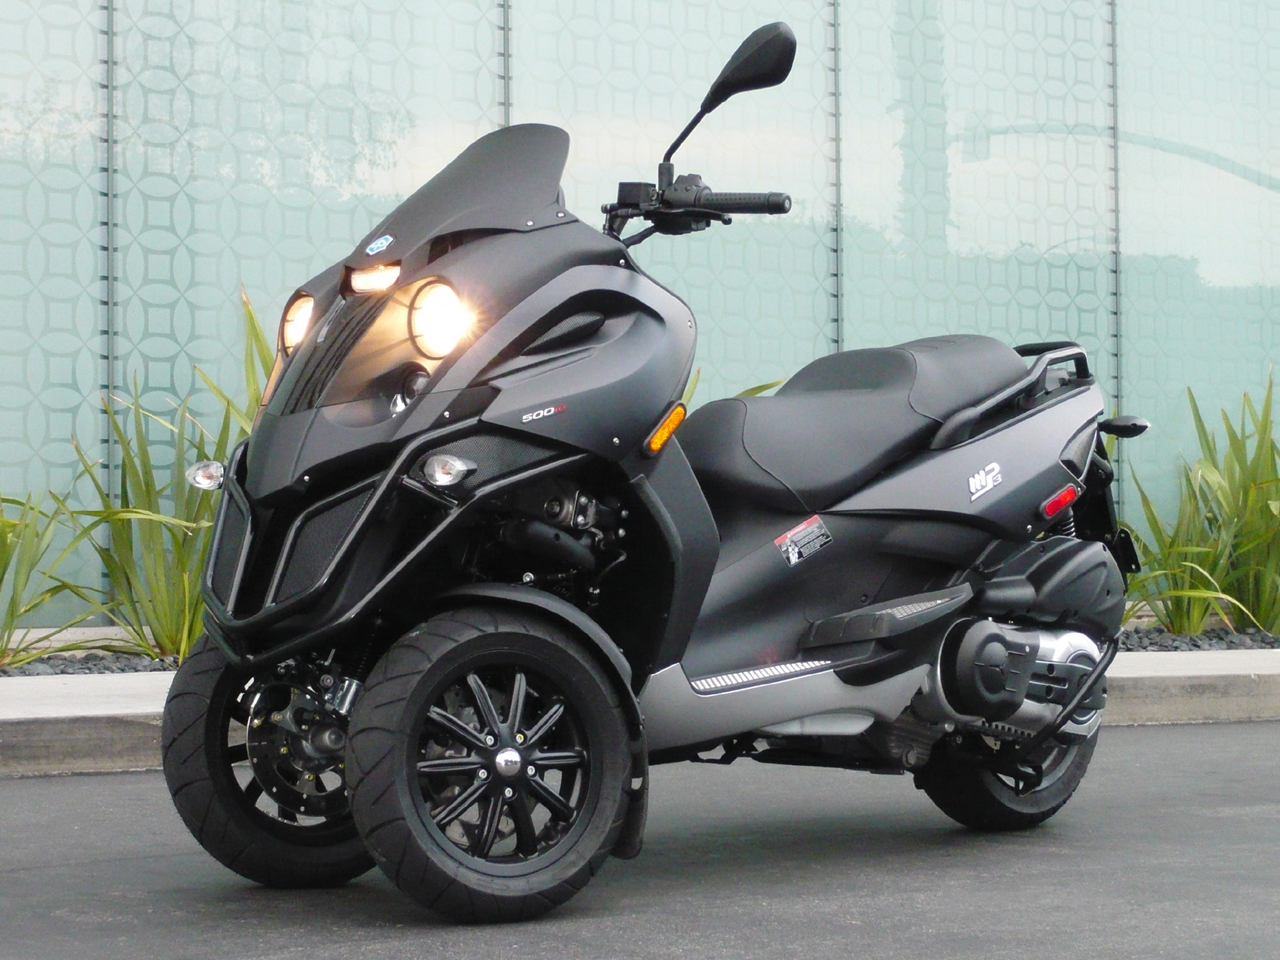 Piaggio MP3 300 Hybrid 2011 images #120539